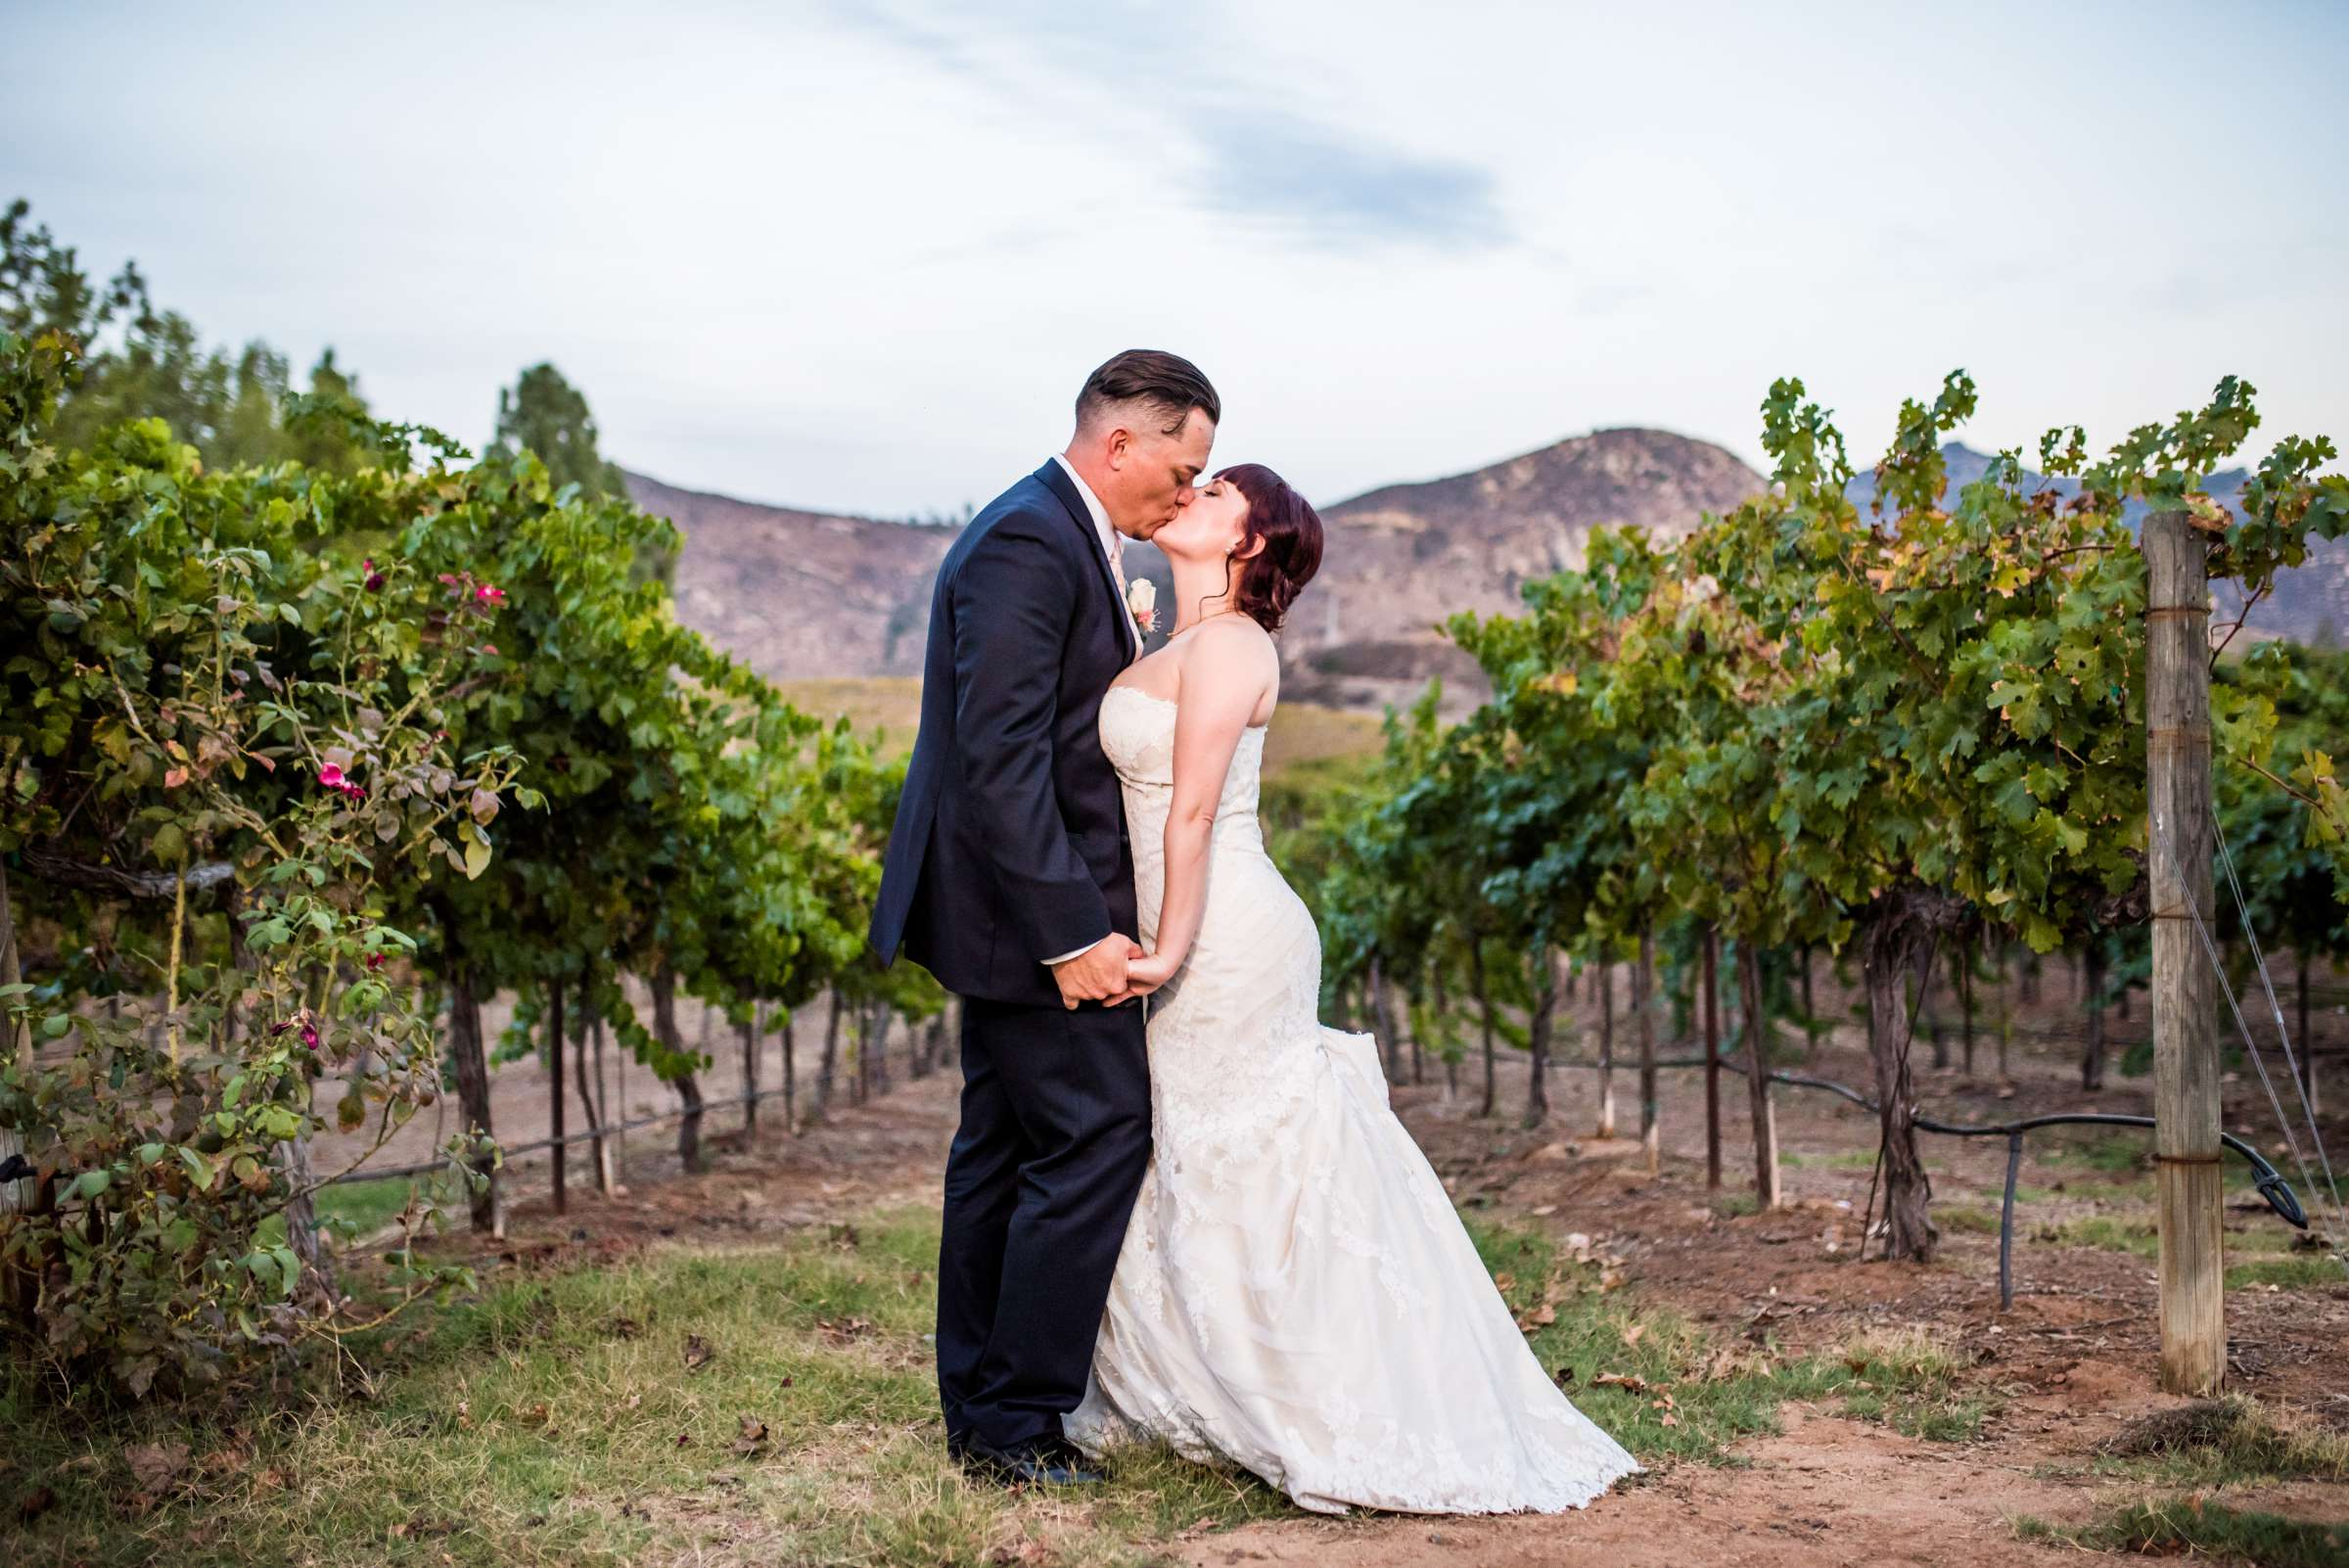 Orfila Vineyards Wedding, Tulasi and Richard Wedding Photo #36 by True Photography